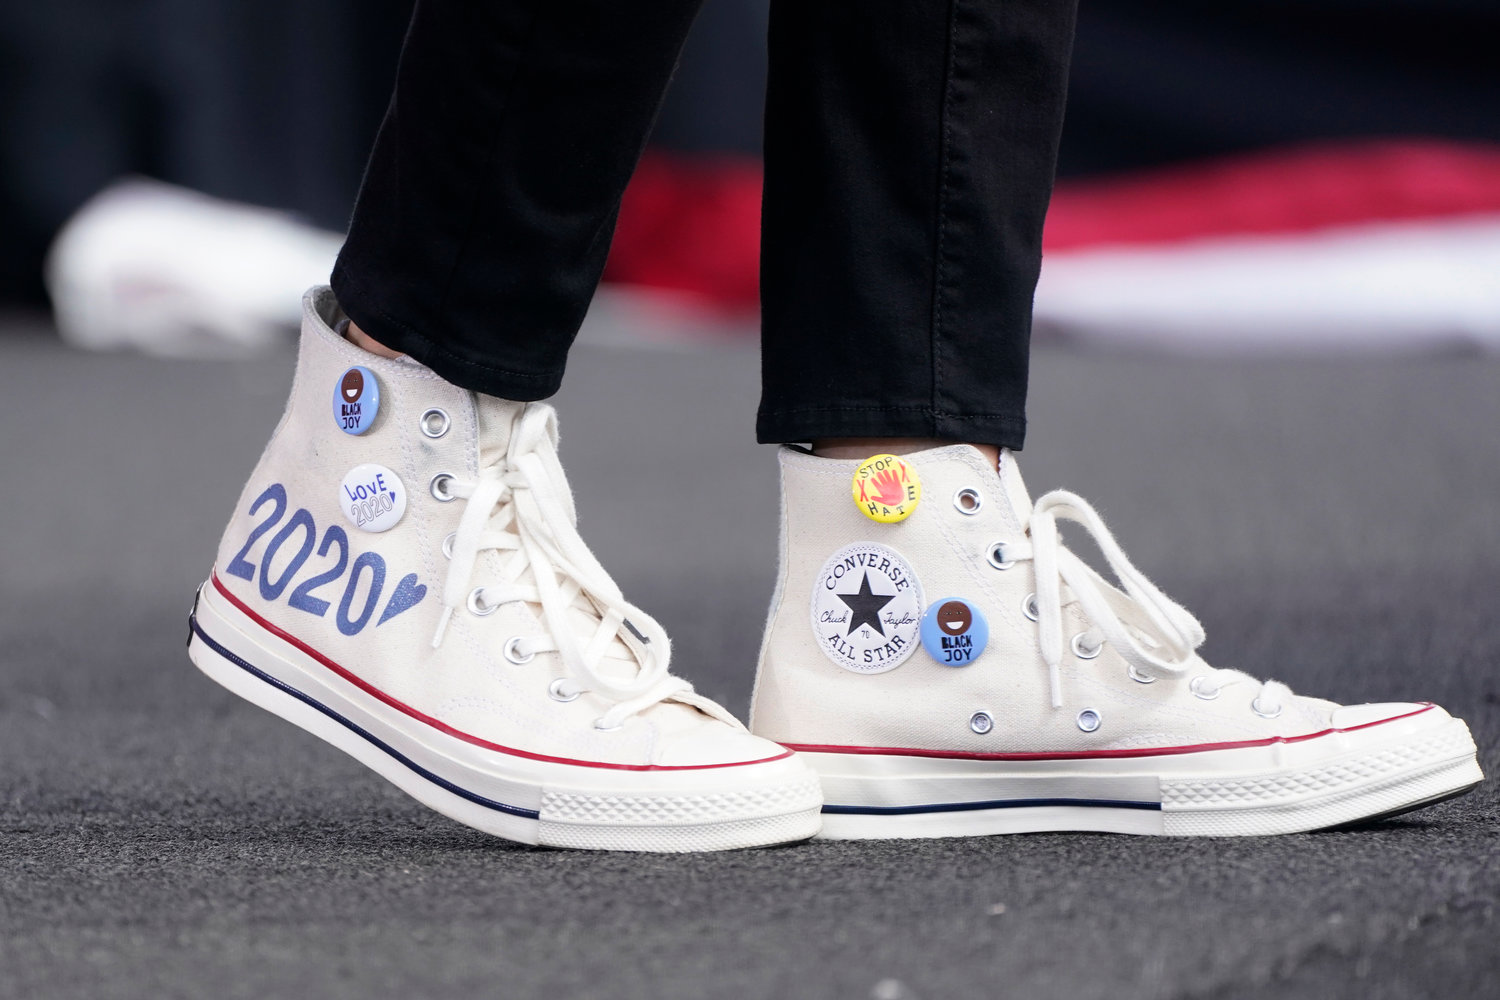 The sneakers of Democratic vice presidential candidate Sen. Kamala Harris, D-Calif., are shown as she speaks at a drive-in early voting event, Saturday, Oct. 31, 2020, in Miami, Fla. (AP Photo/Wilfredo Lee)